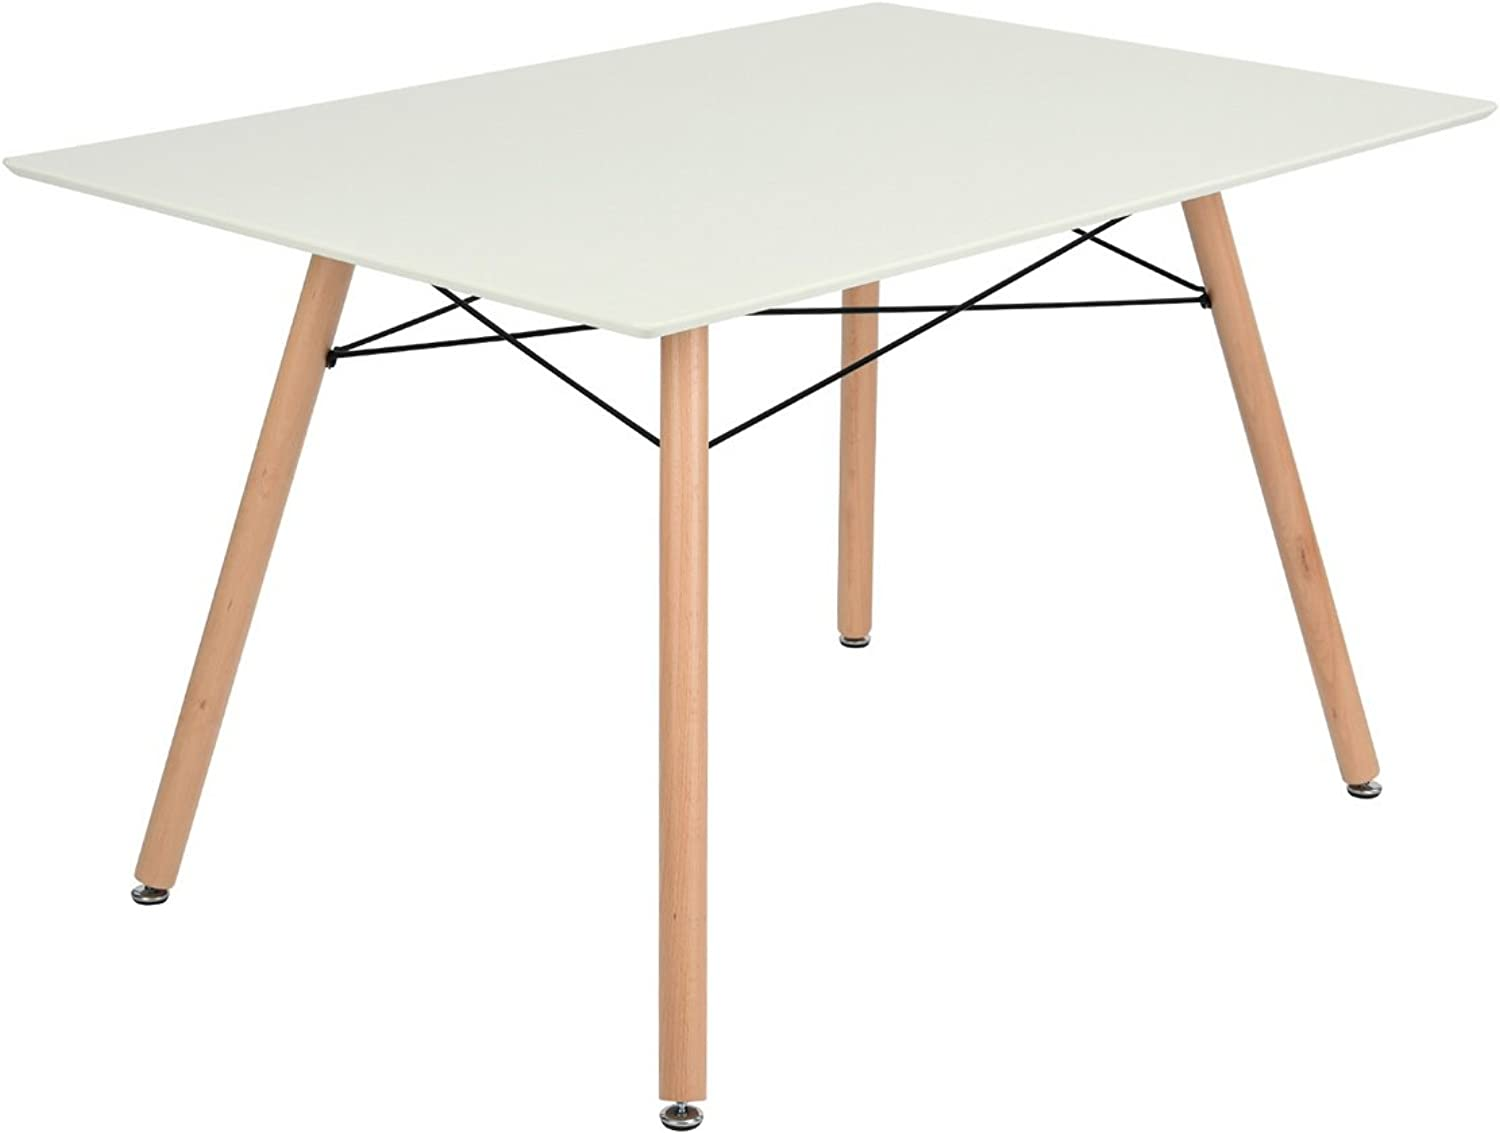 House in Box Modern Kitchen Dining Table Rectangular MDF Table Top with Solid Wood Legs